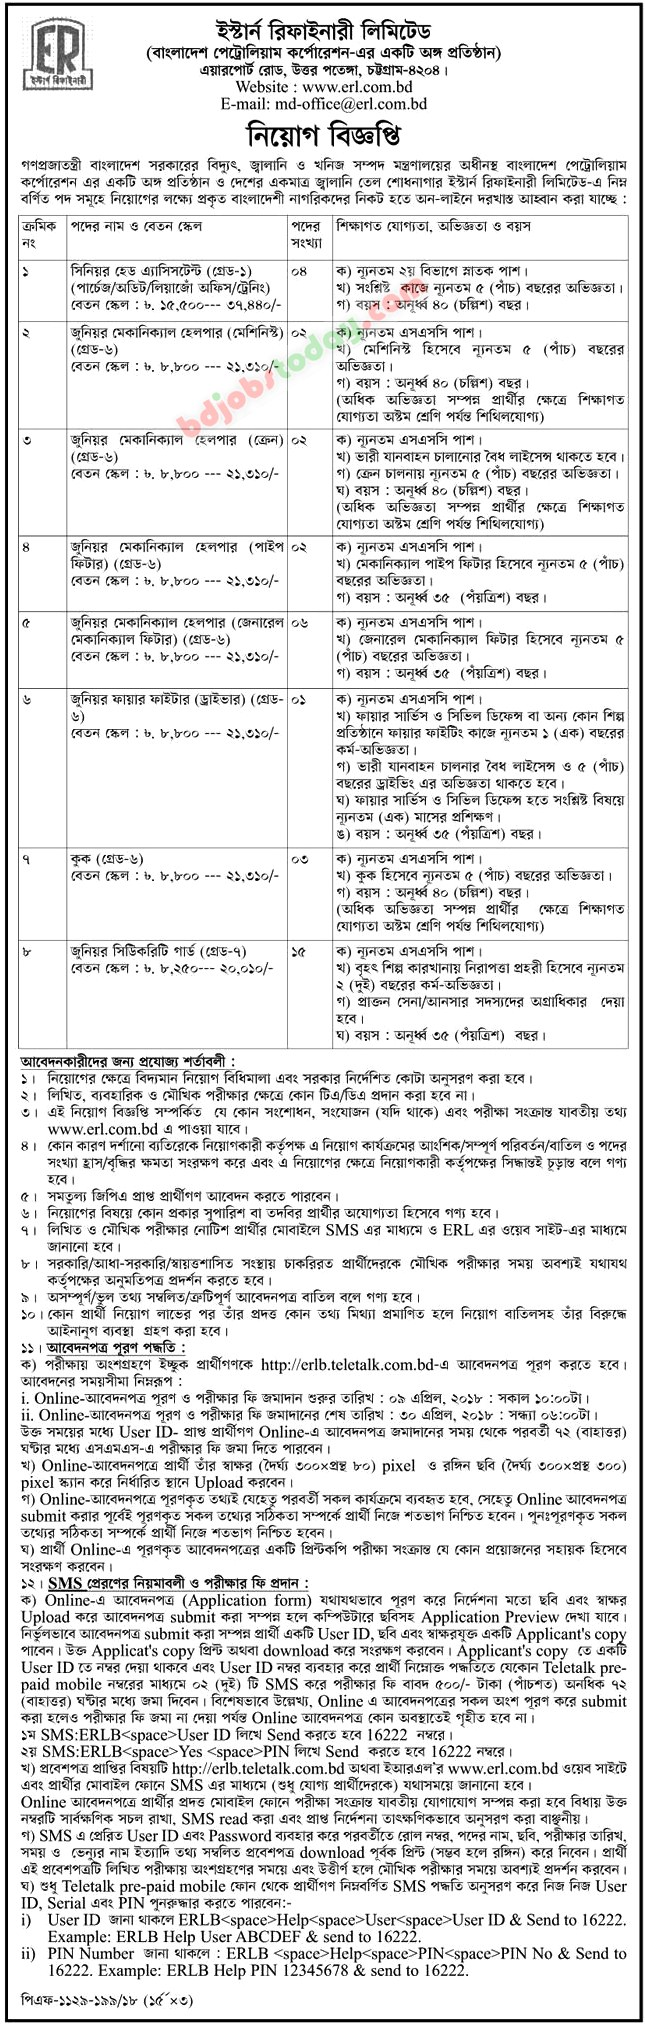 Eastern Refinery Limited jobs